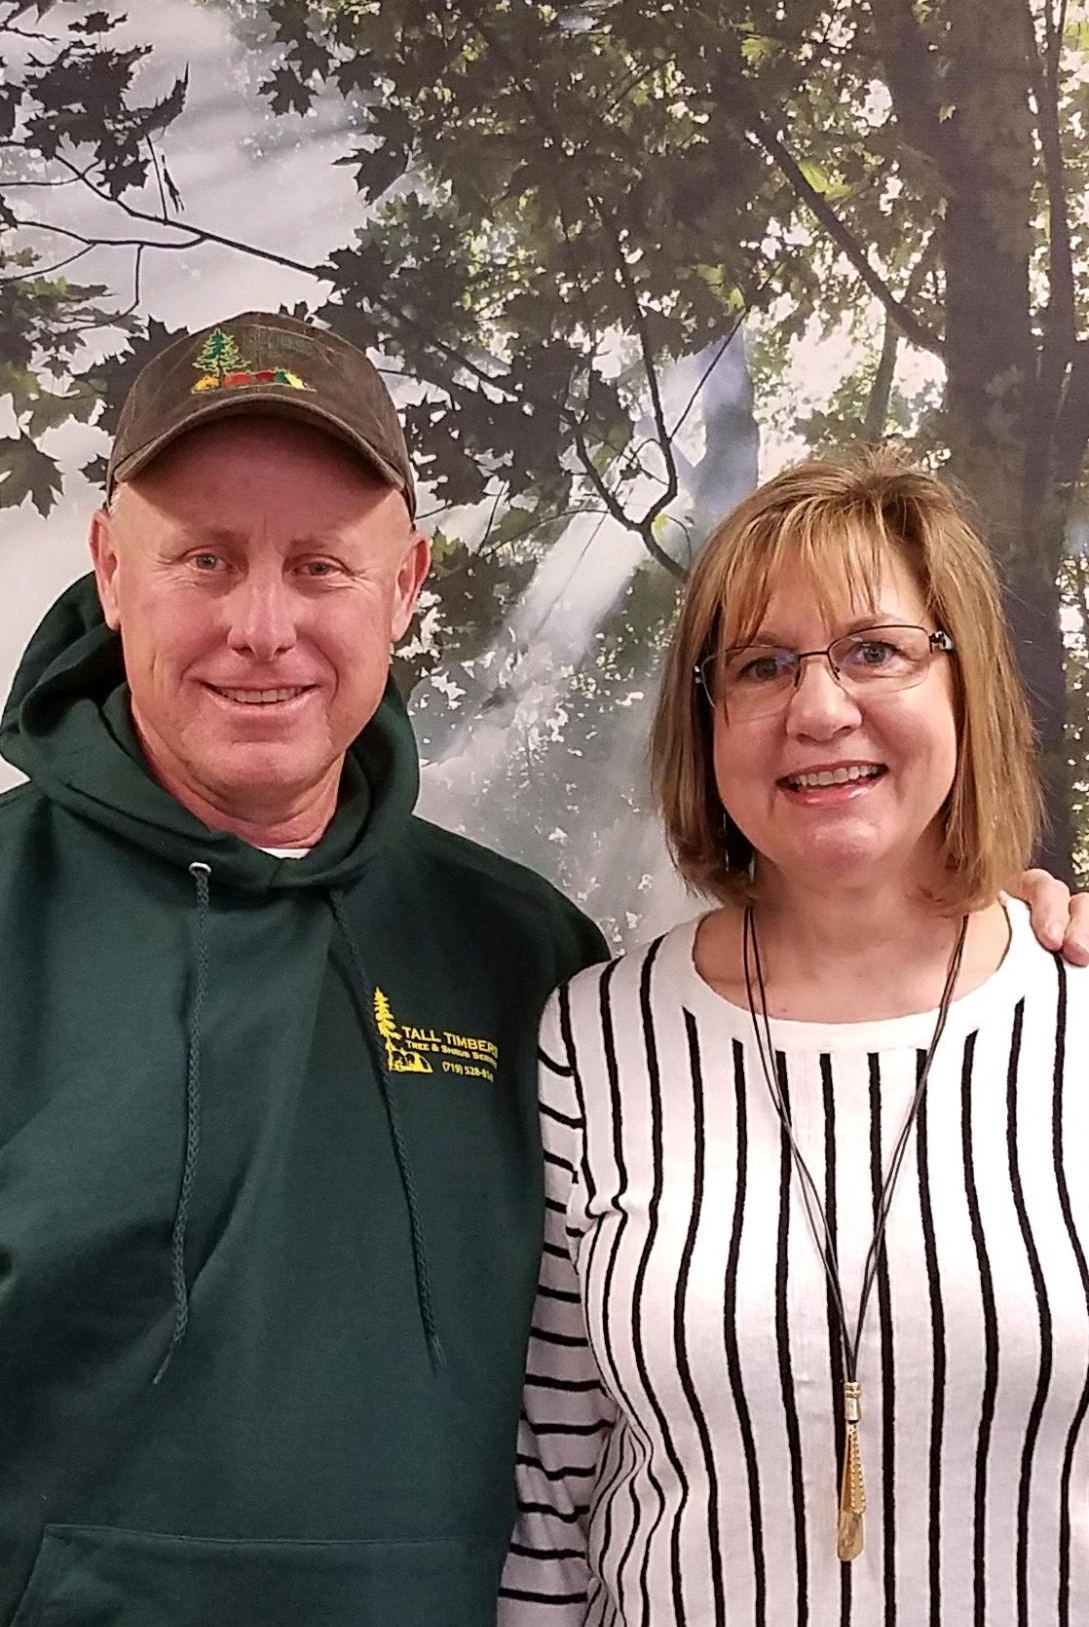 Dave and Debi Carpenter - Owners/OperatorsISA Certified ArboristPesticide License - CO Dept of Ag., QSDave and Debi founded Tall Timbers in June of 2000 with a single pick-up truck and chainsaw. Through hard work and persistence they have grown Tall Timbers into the industry leader in El Paso County. They have great pride in their business and take full responsibility for all successes and failures throughout the organization.Dave has been in the green industry since 1985. He attended the Davey Institute of Tree Science in Kent, Ohio. Dave is an ISA Certified Arborist and carries a QS license with the CO Dept. of Agriculture. Dave has an unrivaled passion for tree care and believes in preserving as many trees as possible to sustain our urban forests.Debi has over 20 years experience working in the green industry. She handles all of the behind the scenes work in the office at Tall Timbers. From HR and accounting to scheduling and payroll, she keeps the organization running smoothly. Debi takes great pride in providing unmatched customer service to every one of our clients.